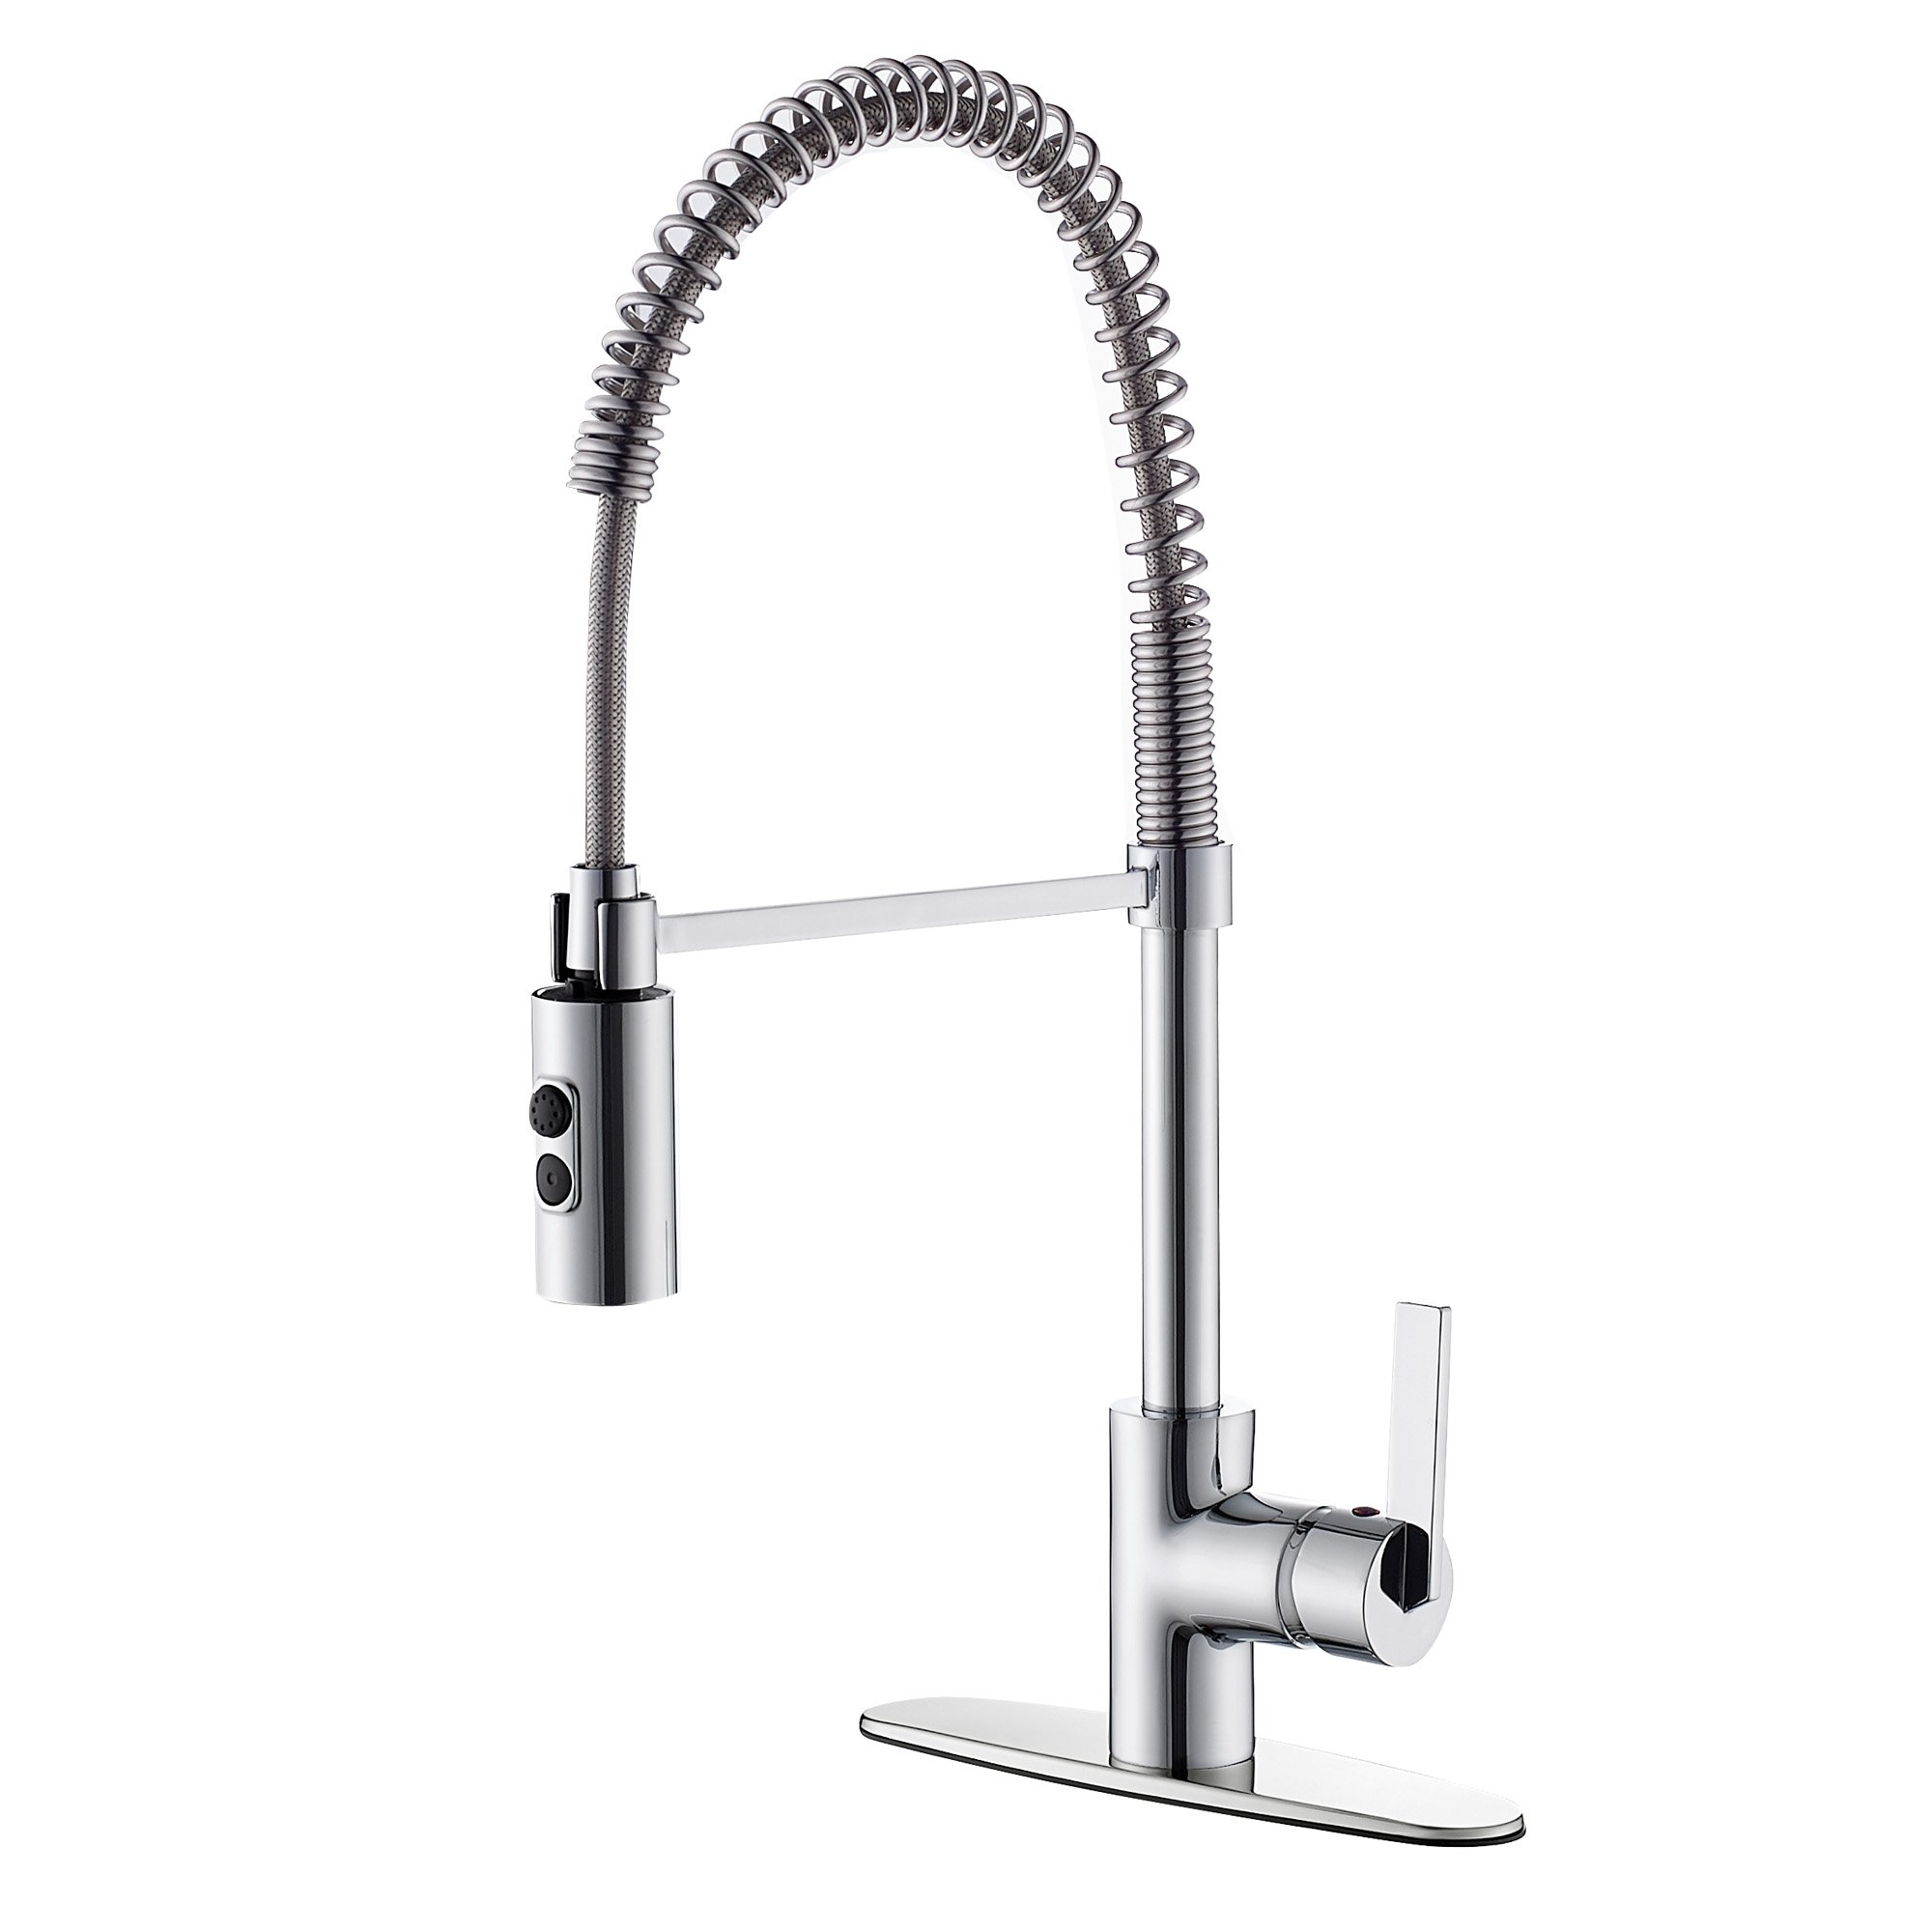 TimeArrow TAF852R-CP01 Modern Commercial Chrome Pull Down Sprayer Kitchen Faucet, Single Handle Kitchen Sink Faucet With Deck Plate